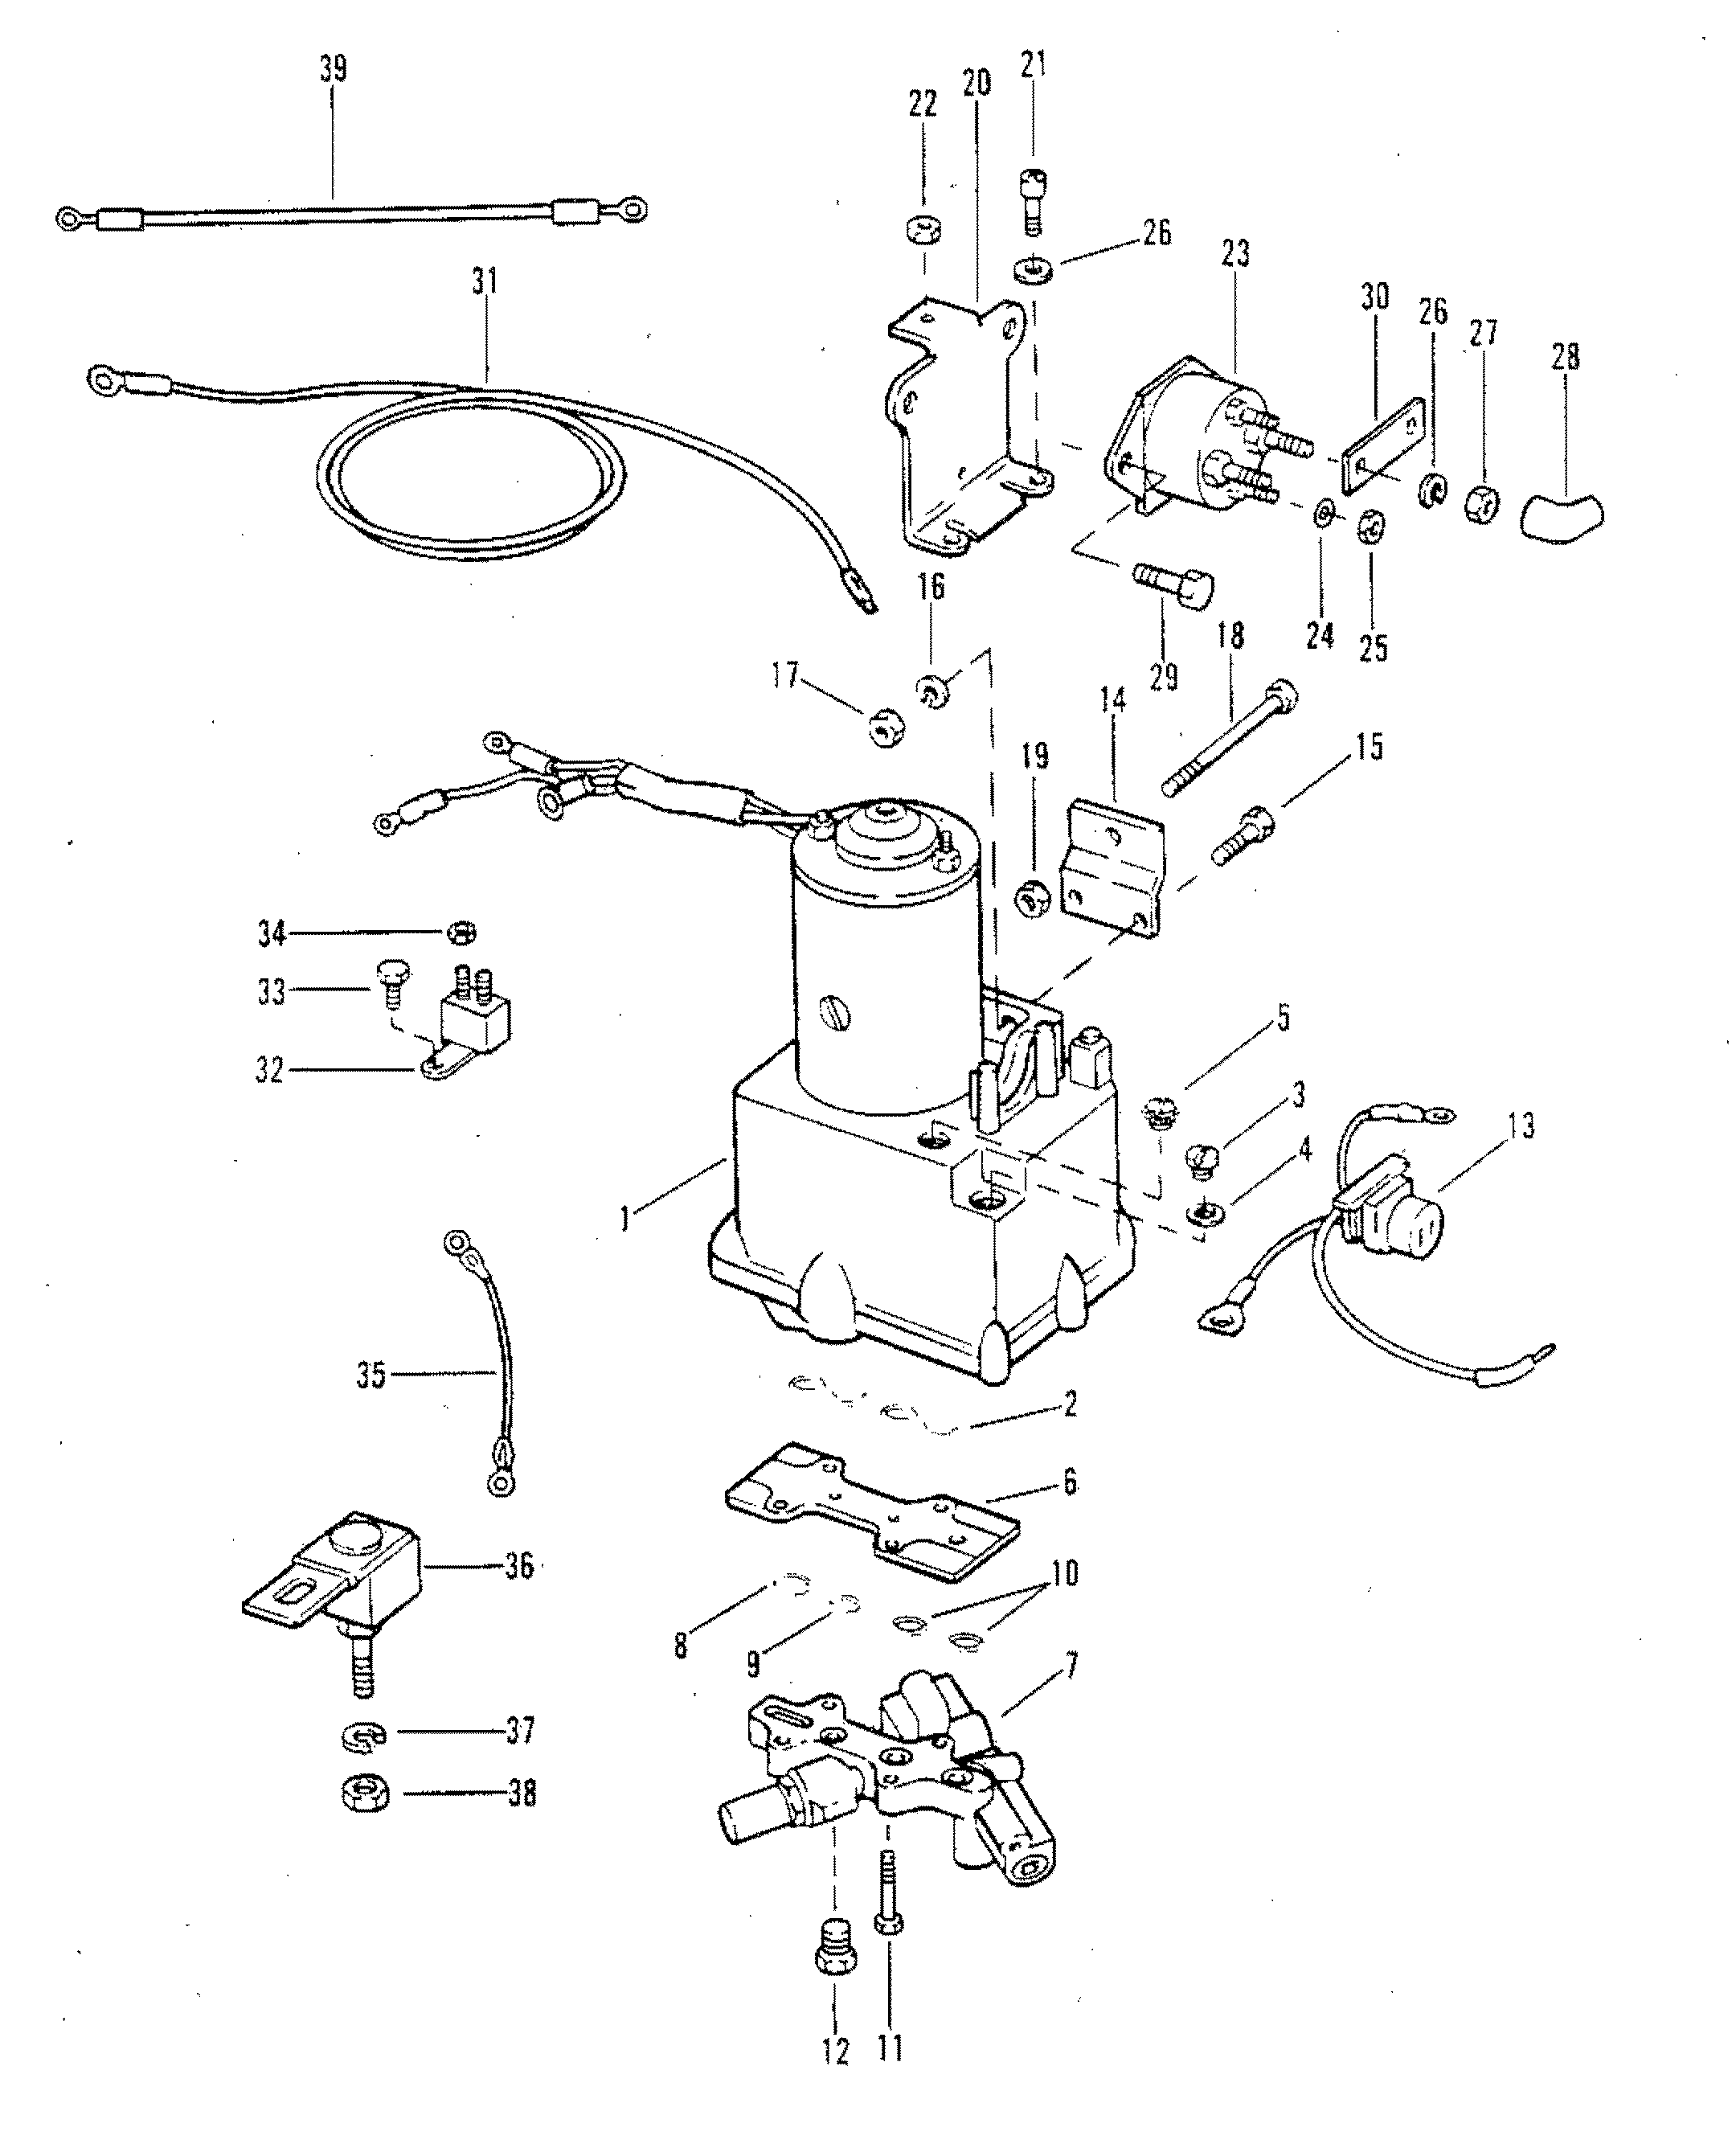 power trim components with circuit breaker and fuse for